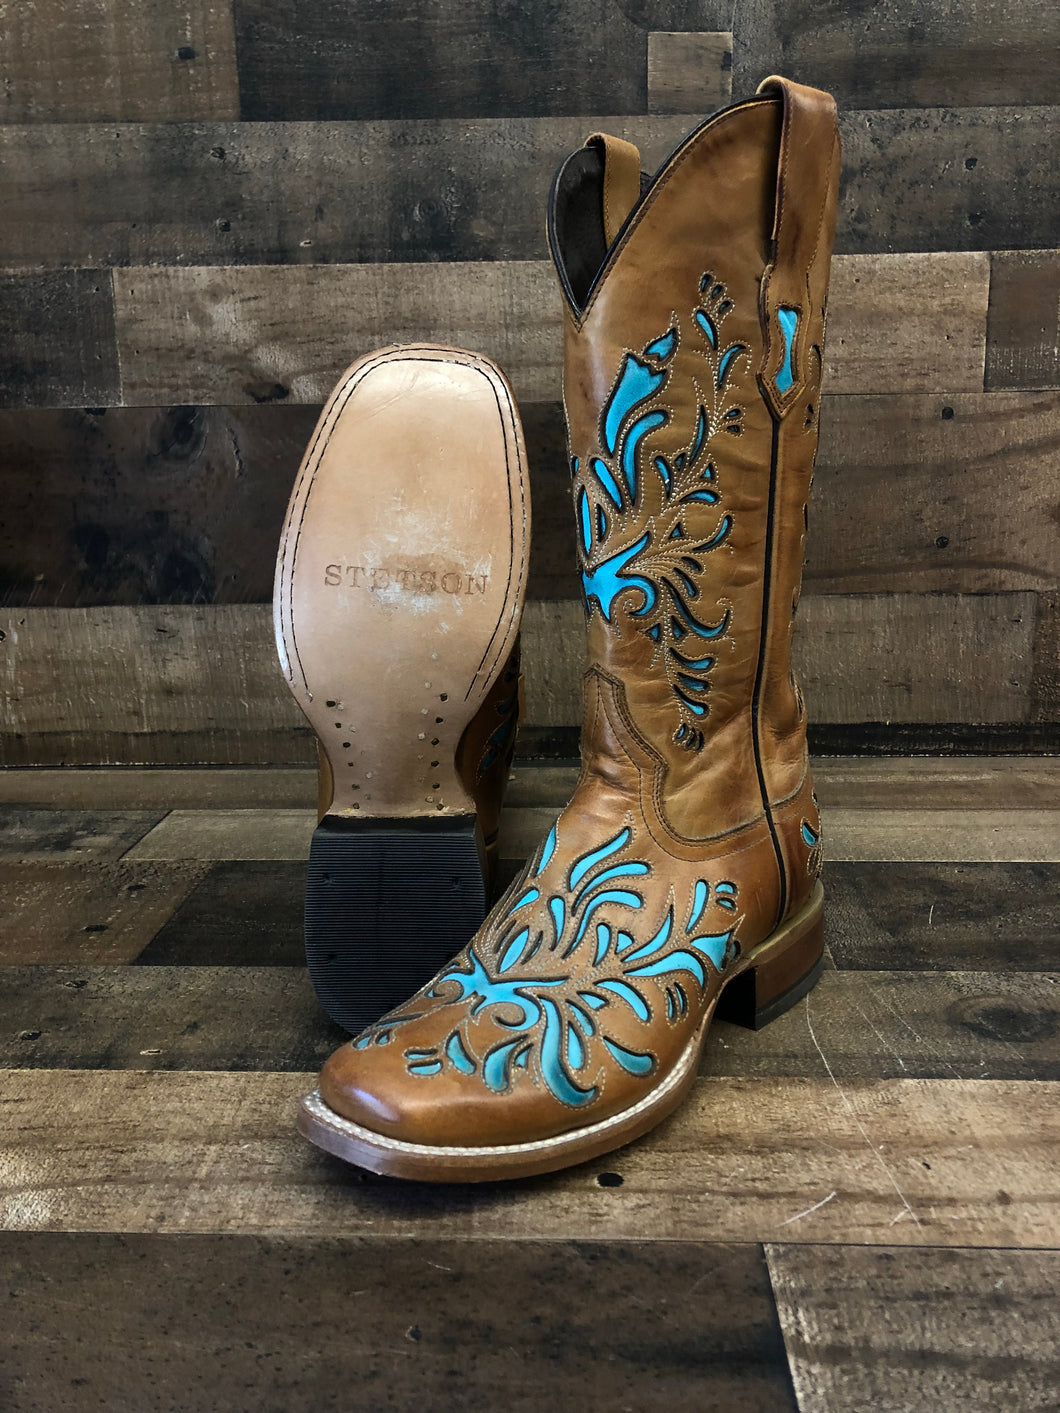 Women's Stetson Tan with Turquoise Inlay Boots